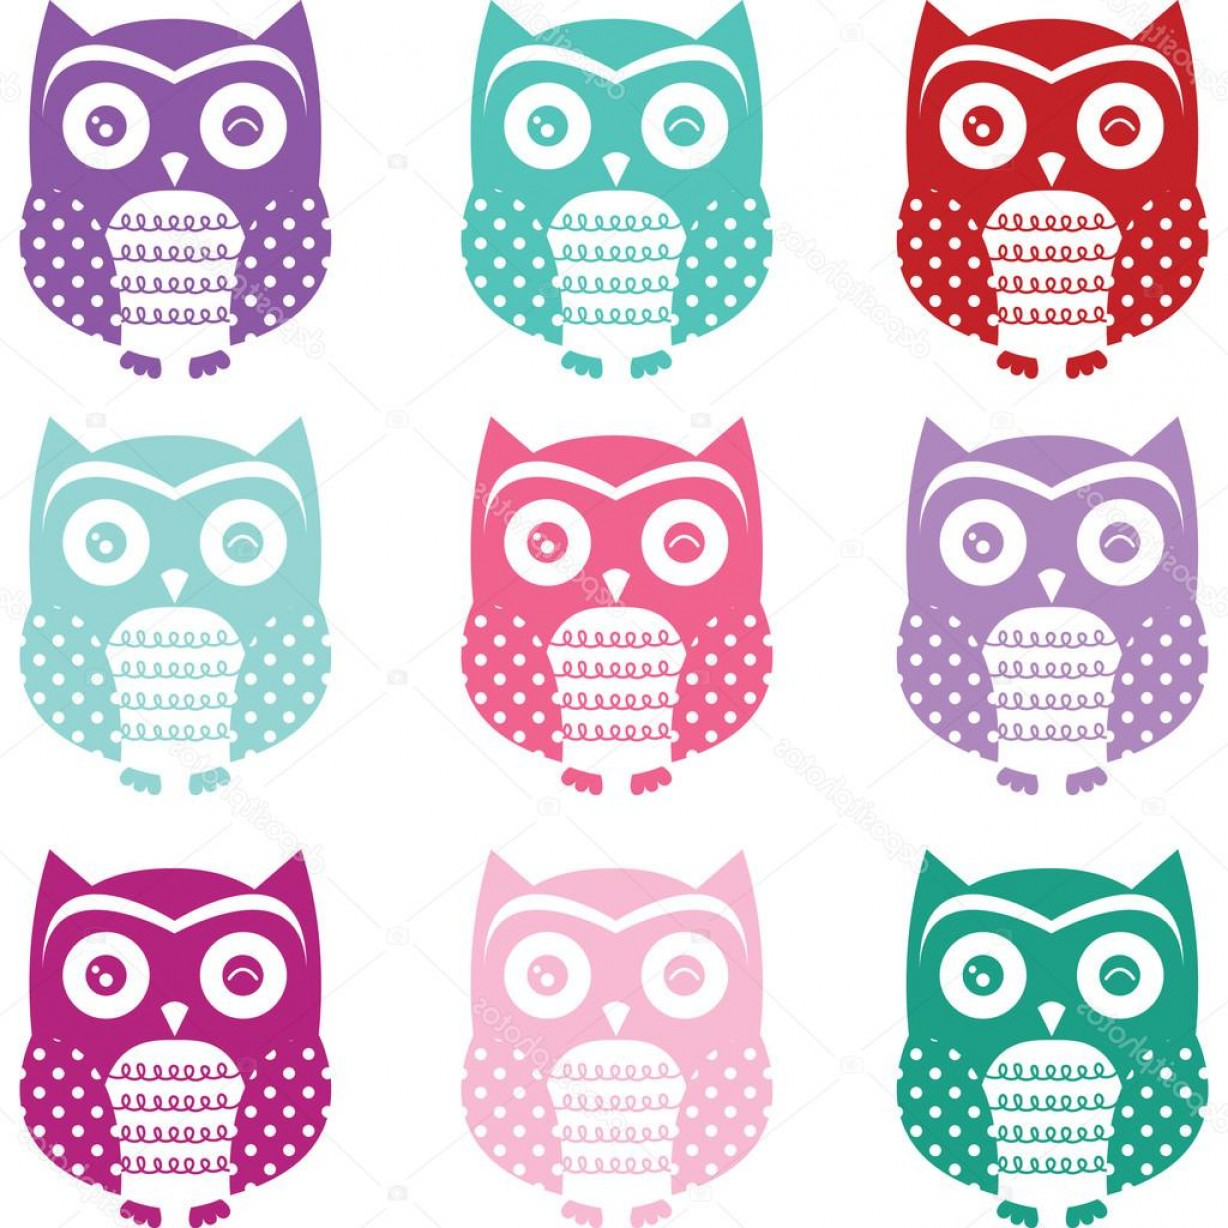 Owl Silhouette Vector Art: Stock Illustration Colorful Cute Owl Silhouette Collections